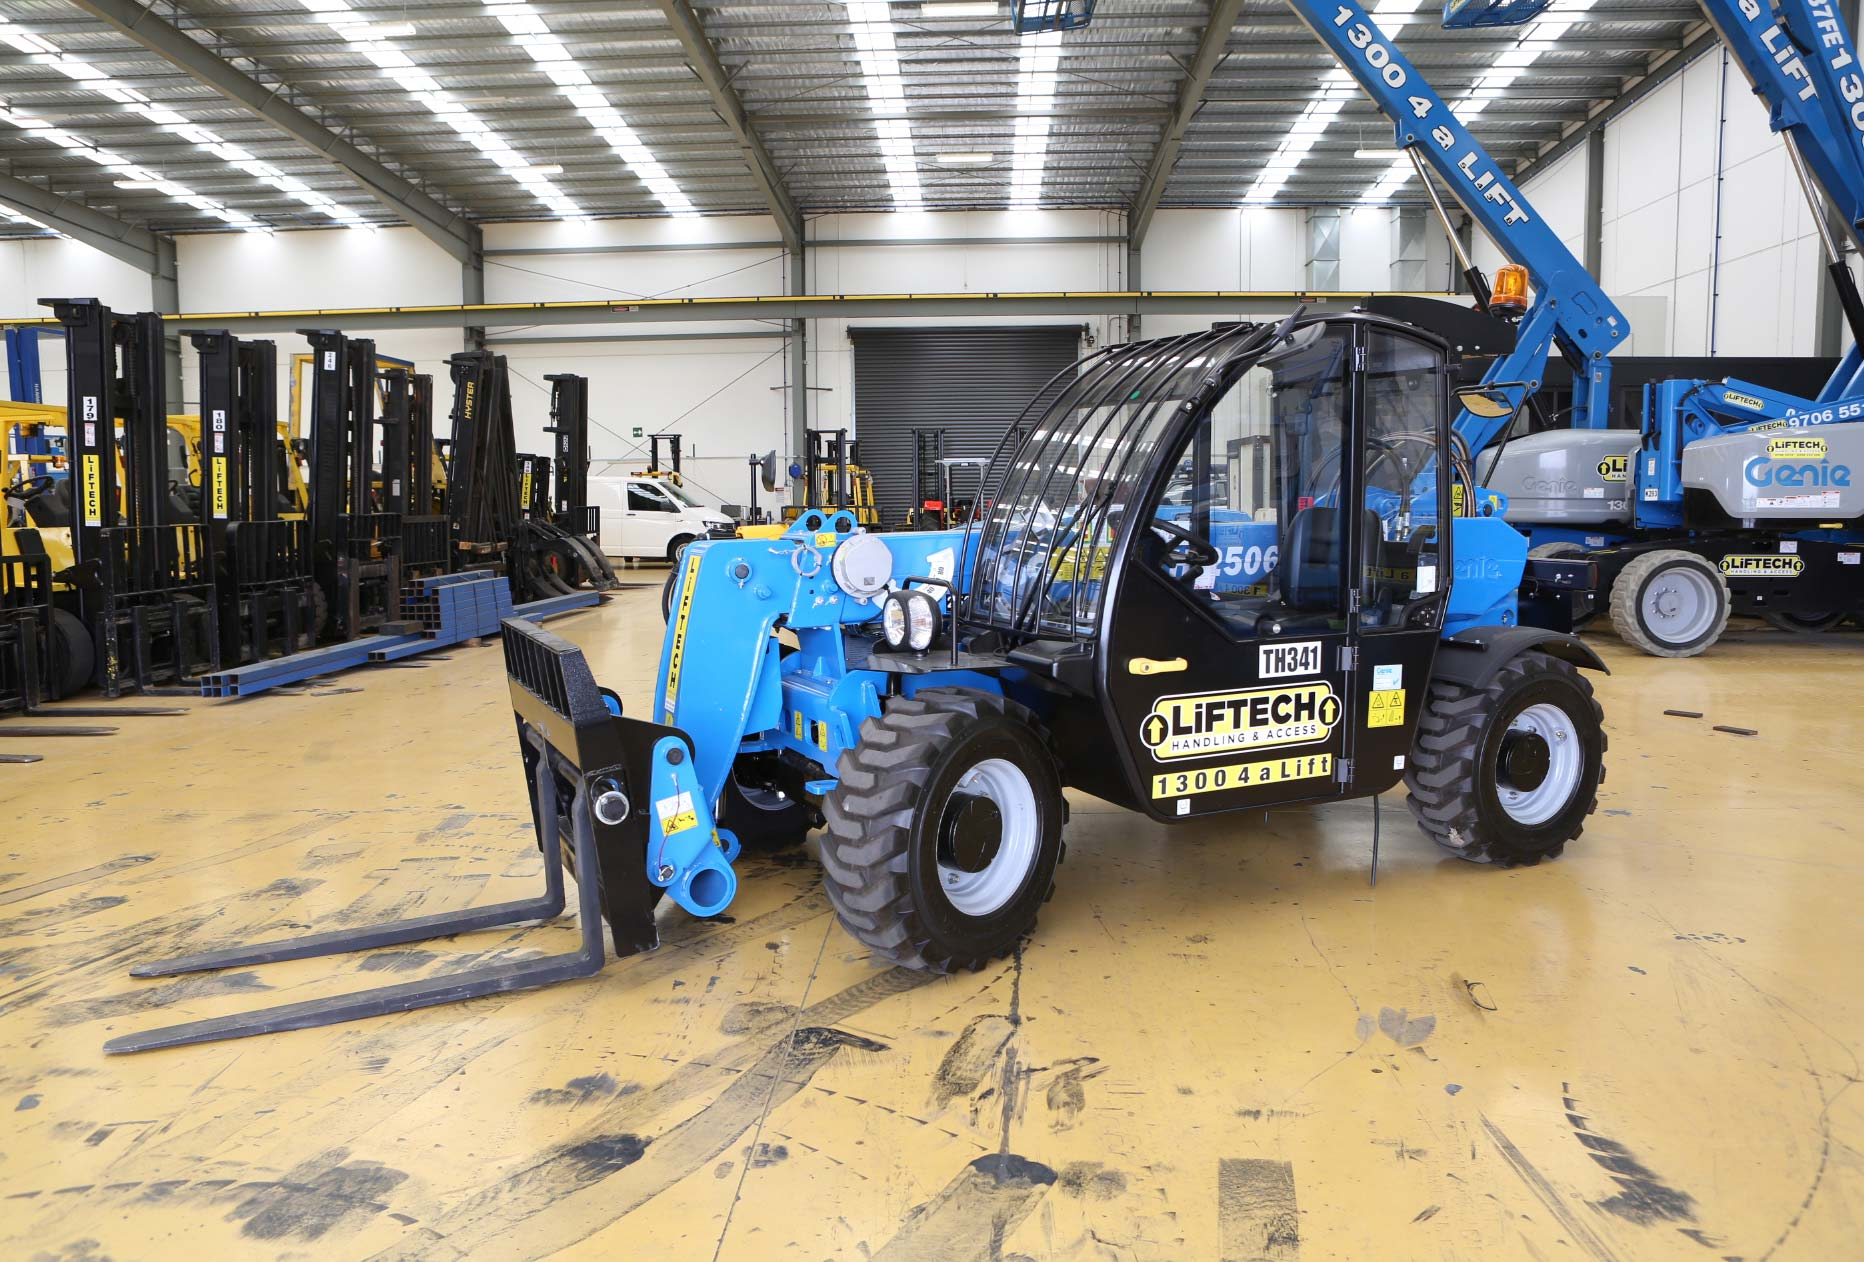 2.5 Tonne Telehandler Forklift for Hire in Melbourne